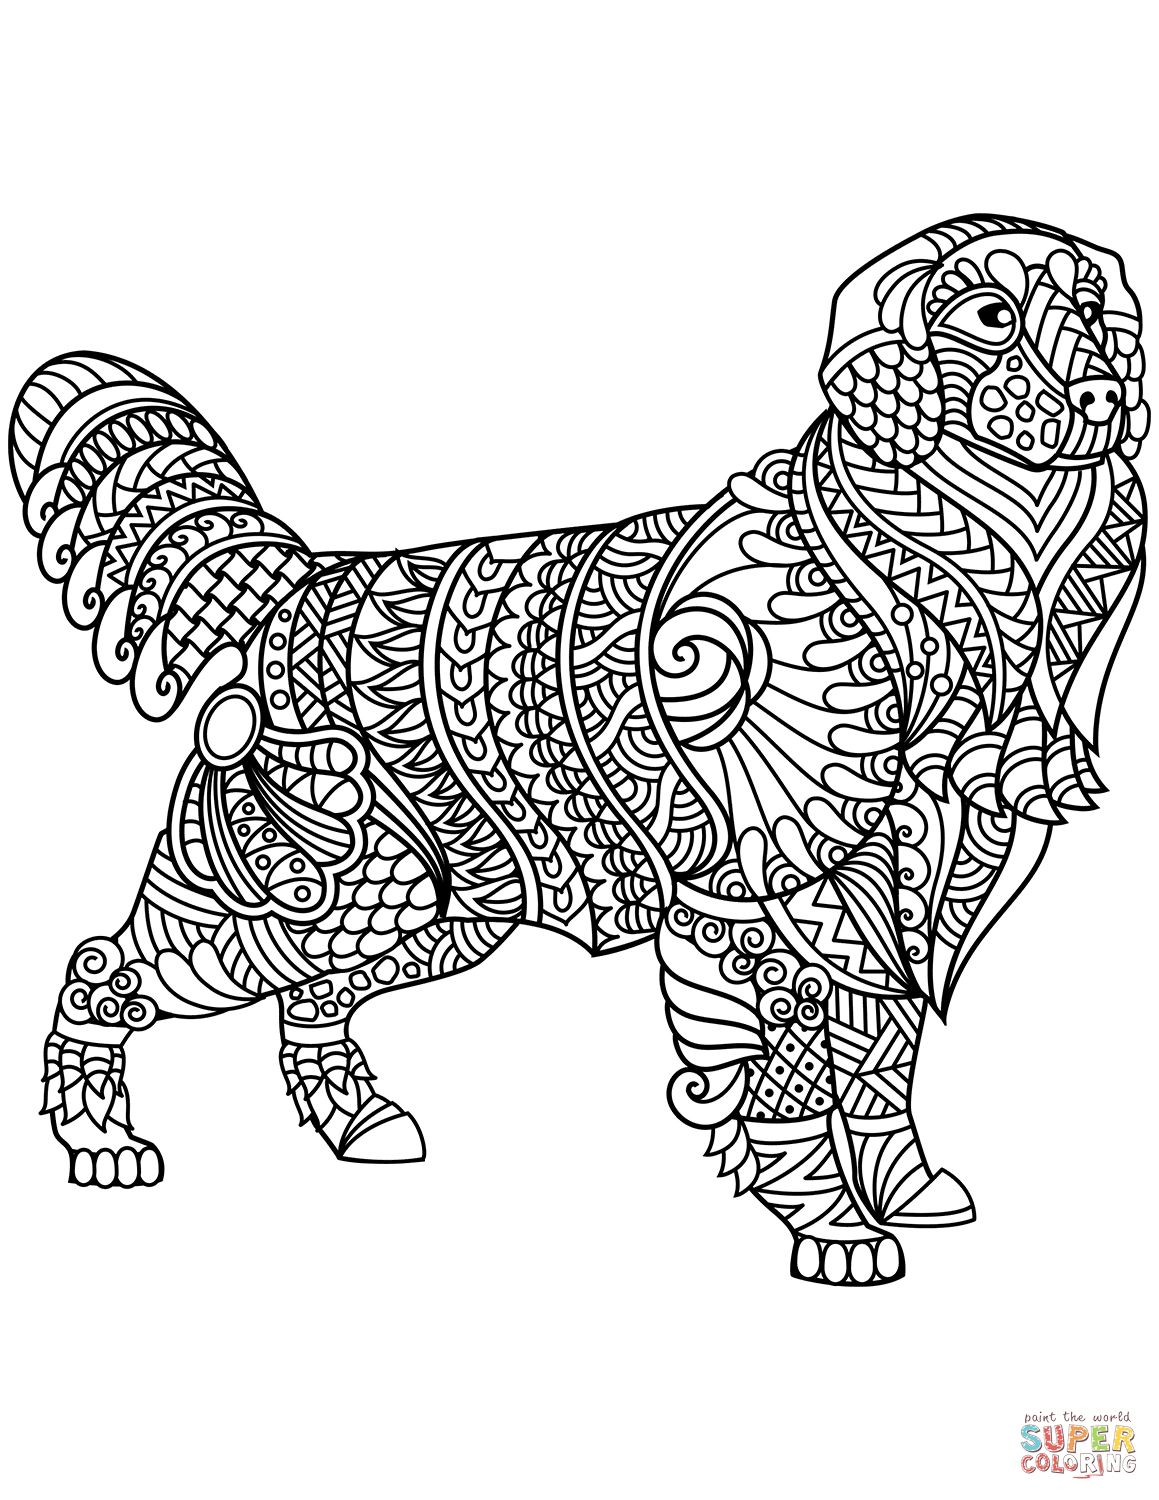 Golden Retriever Coloring Page Golden Retriever Zentangle Coloring